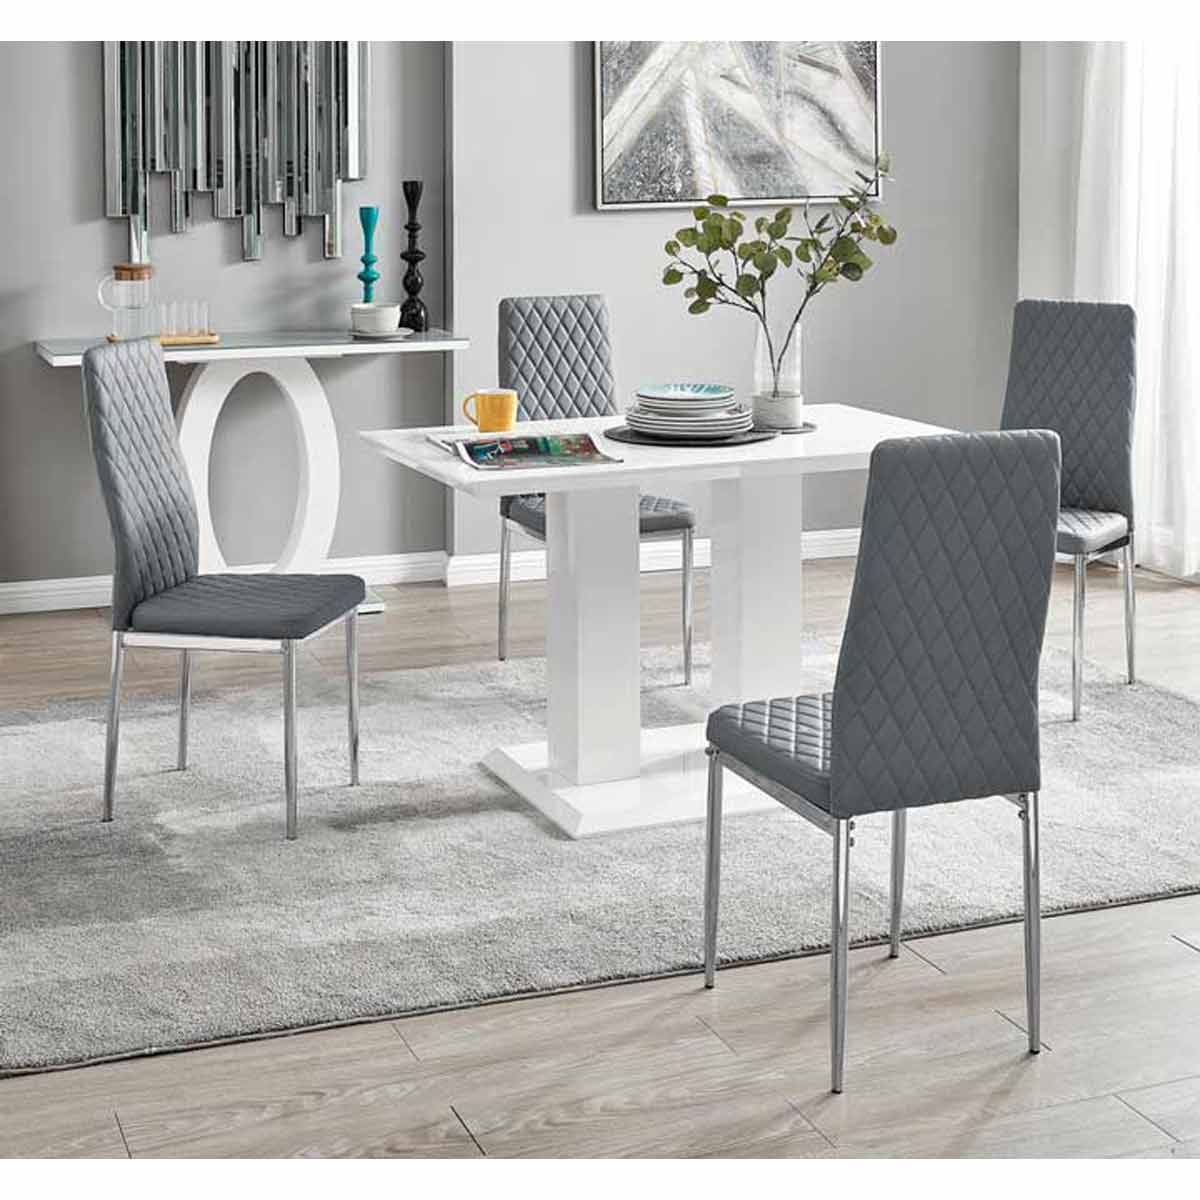 Furniture Box Imperia 4 Modern White High Gloss Dining Table And 4 Elephant Grey Milan Chairs Set